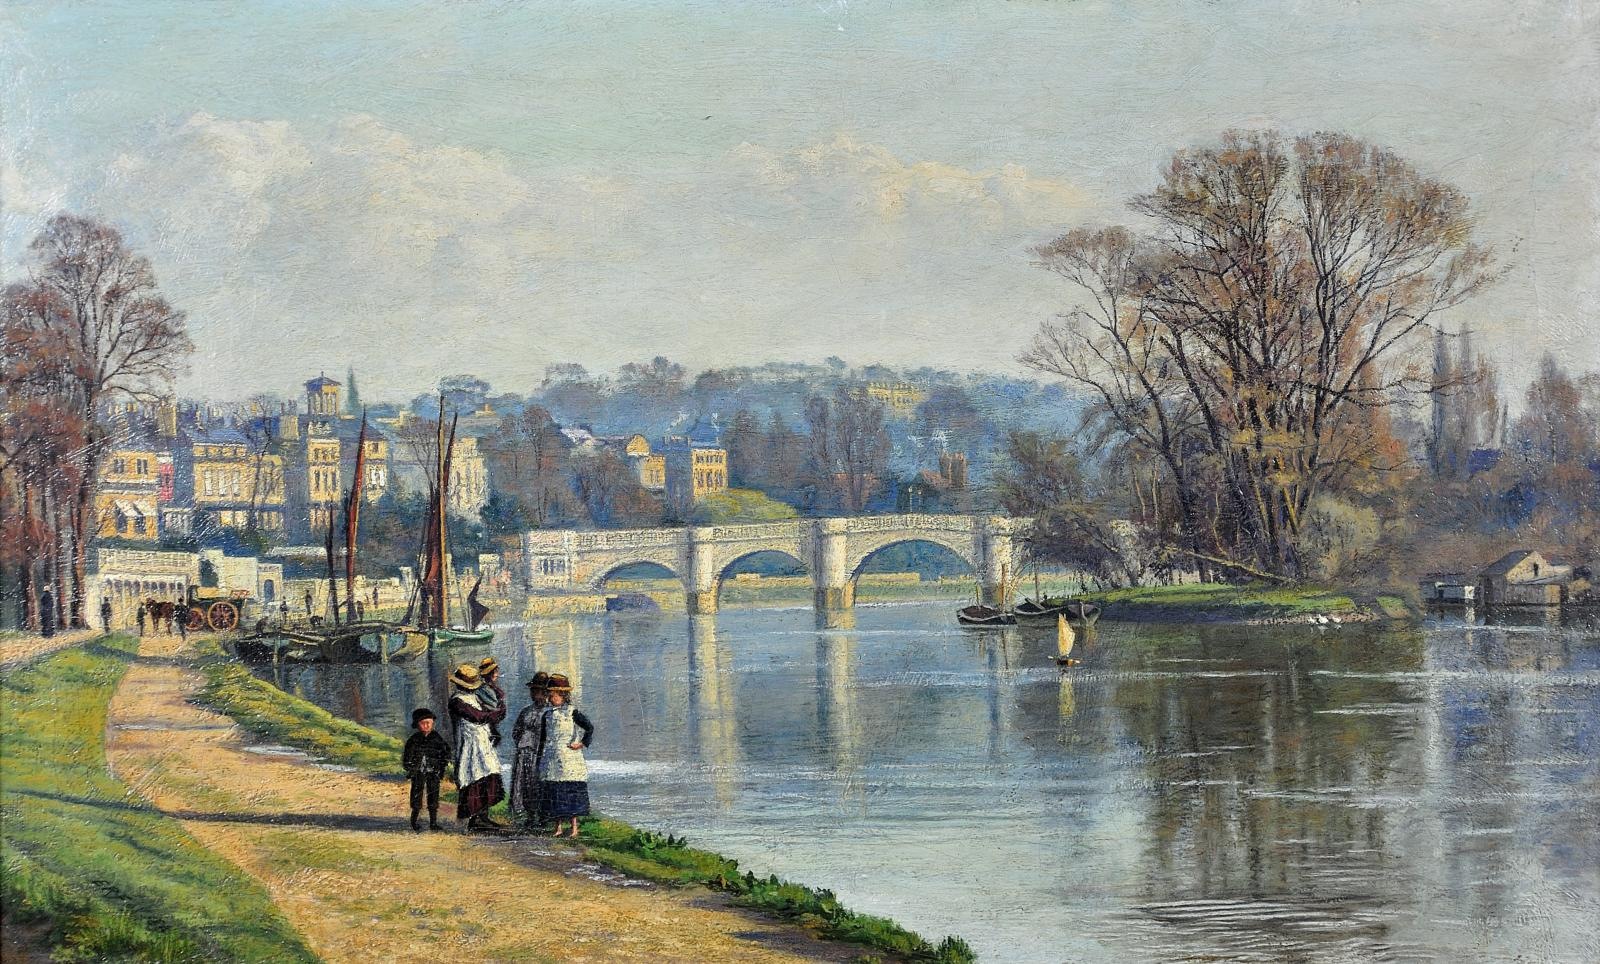 a riverside in evening with a bridge and a family walking